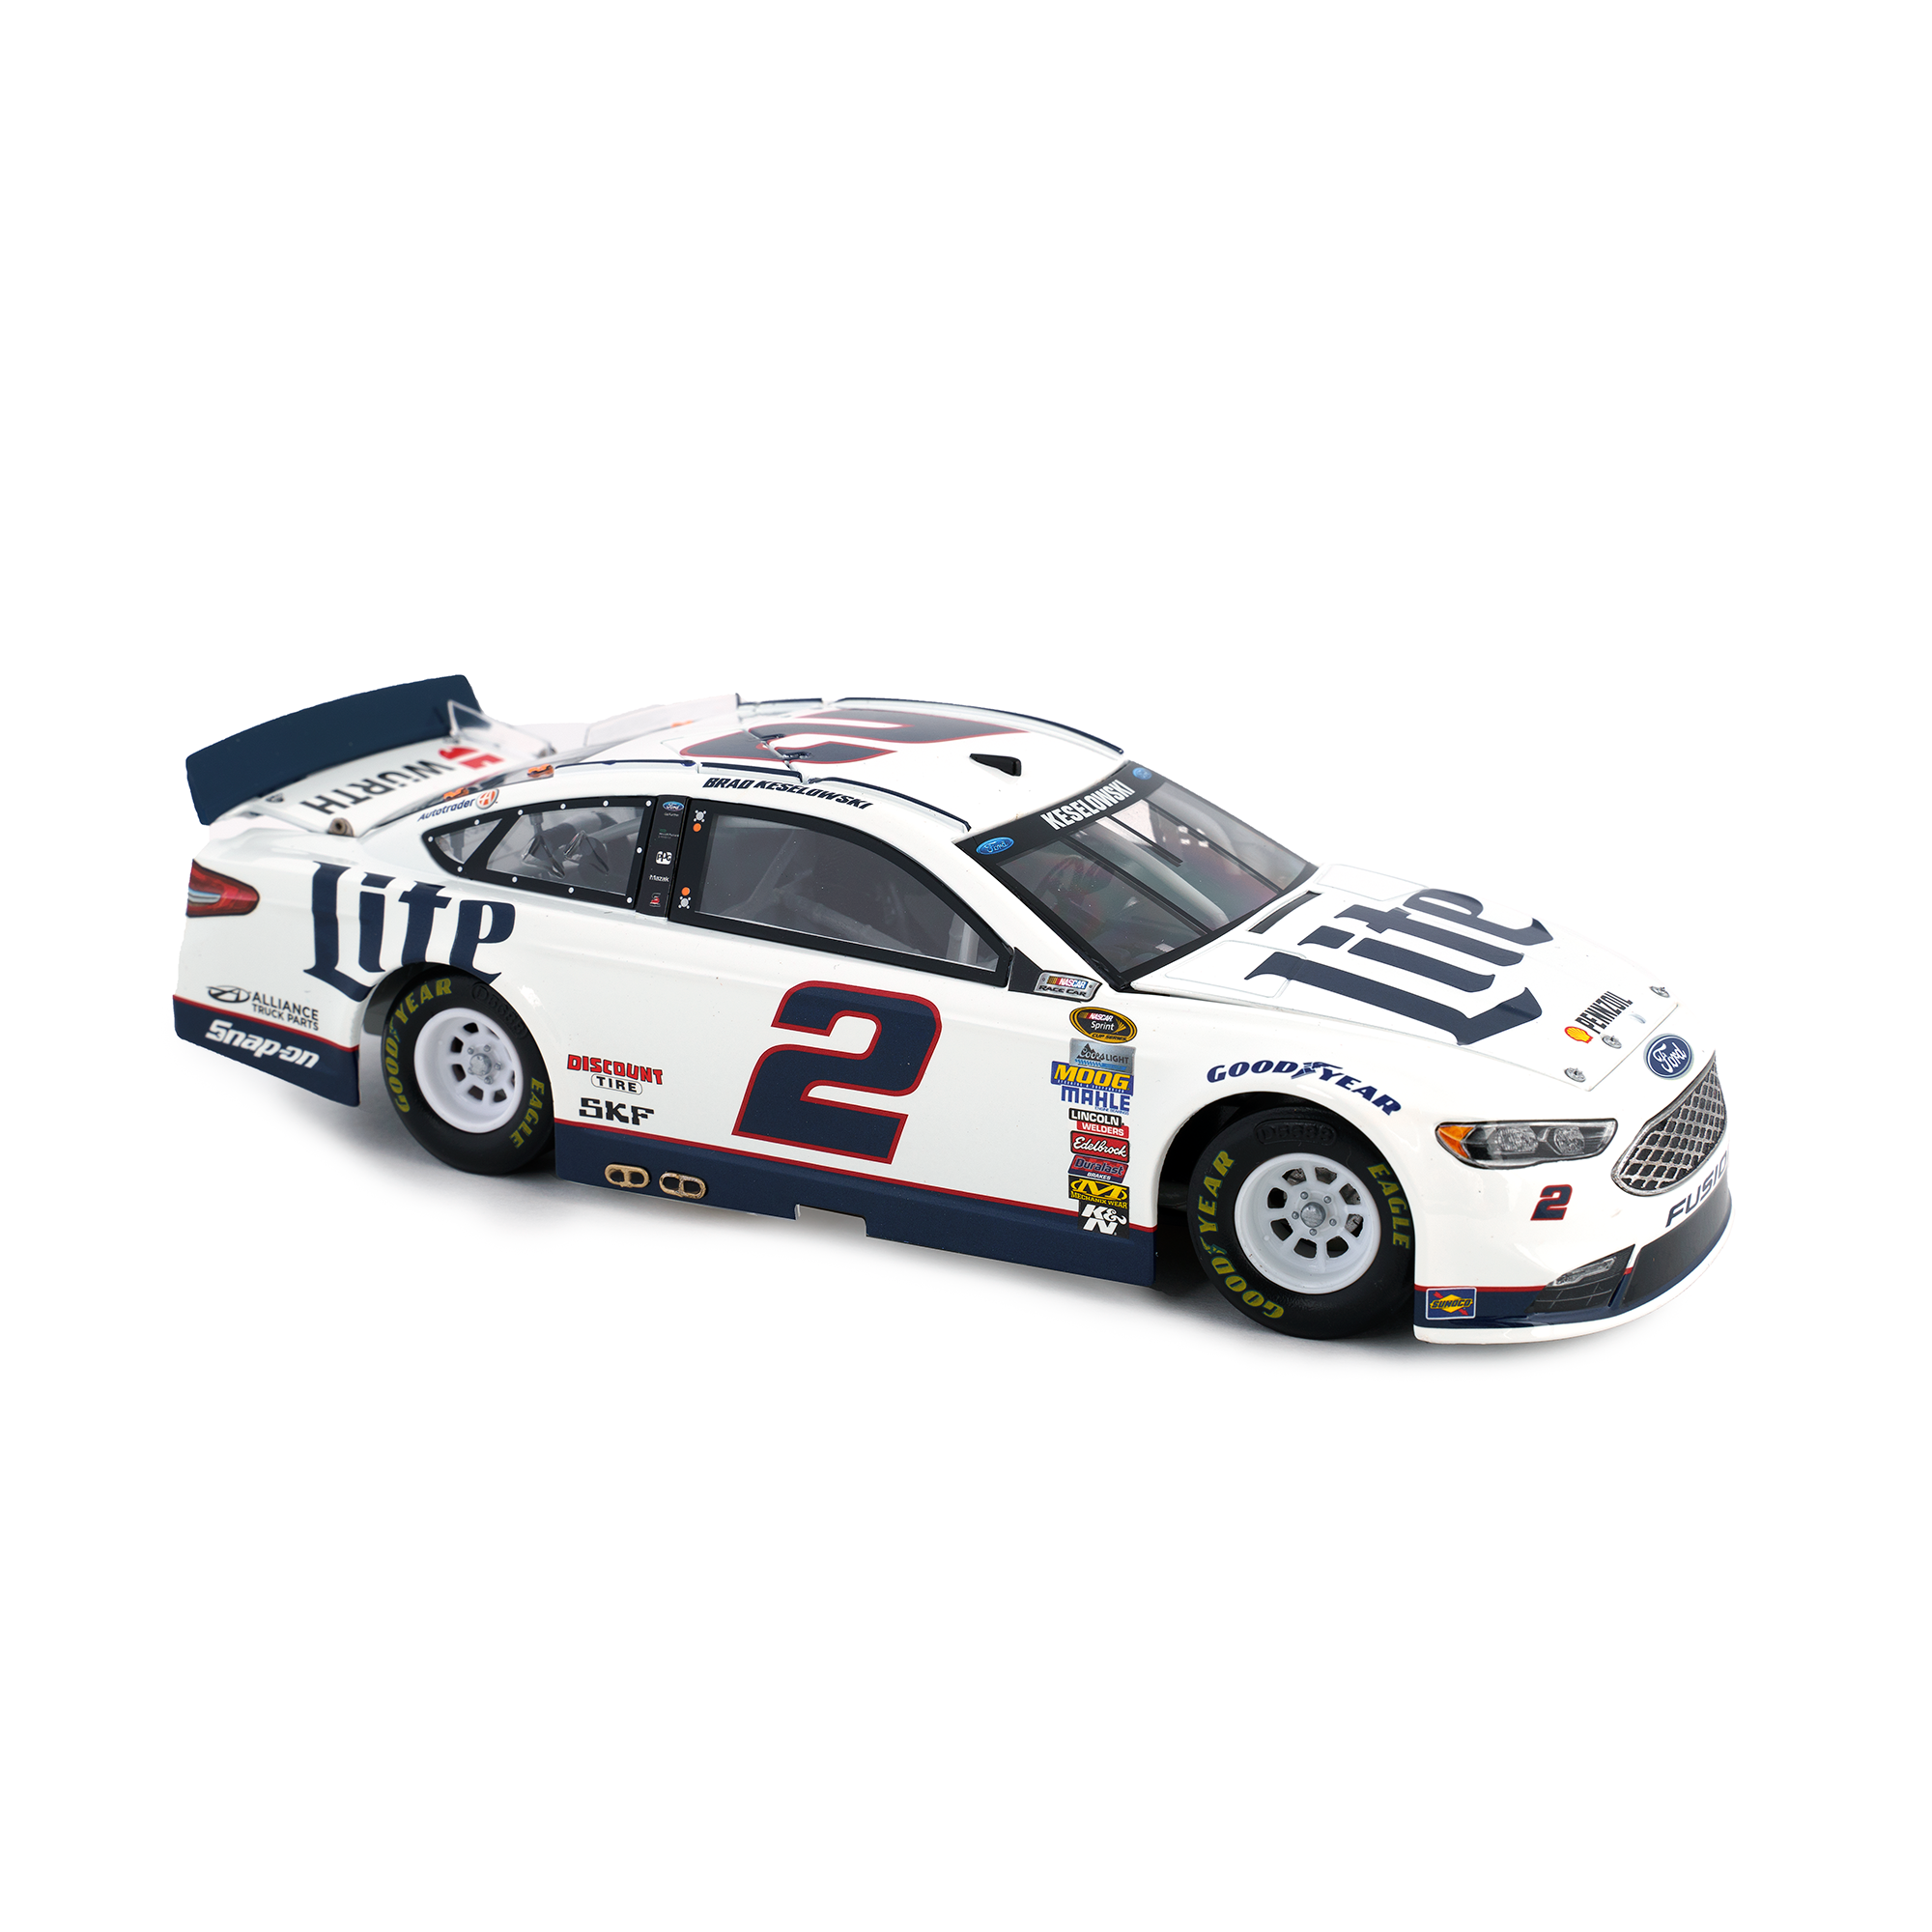 MILLER LITE DIE CAST CAR 1:24